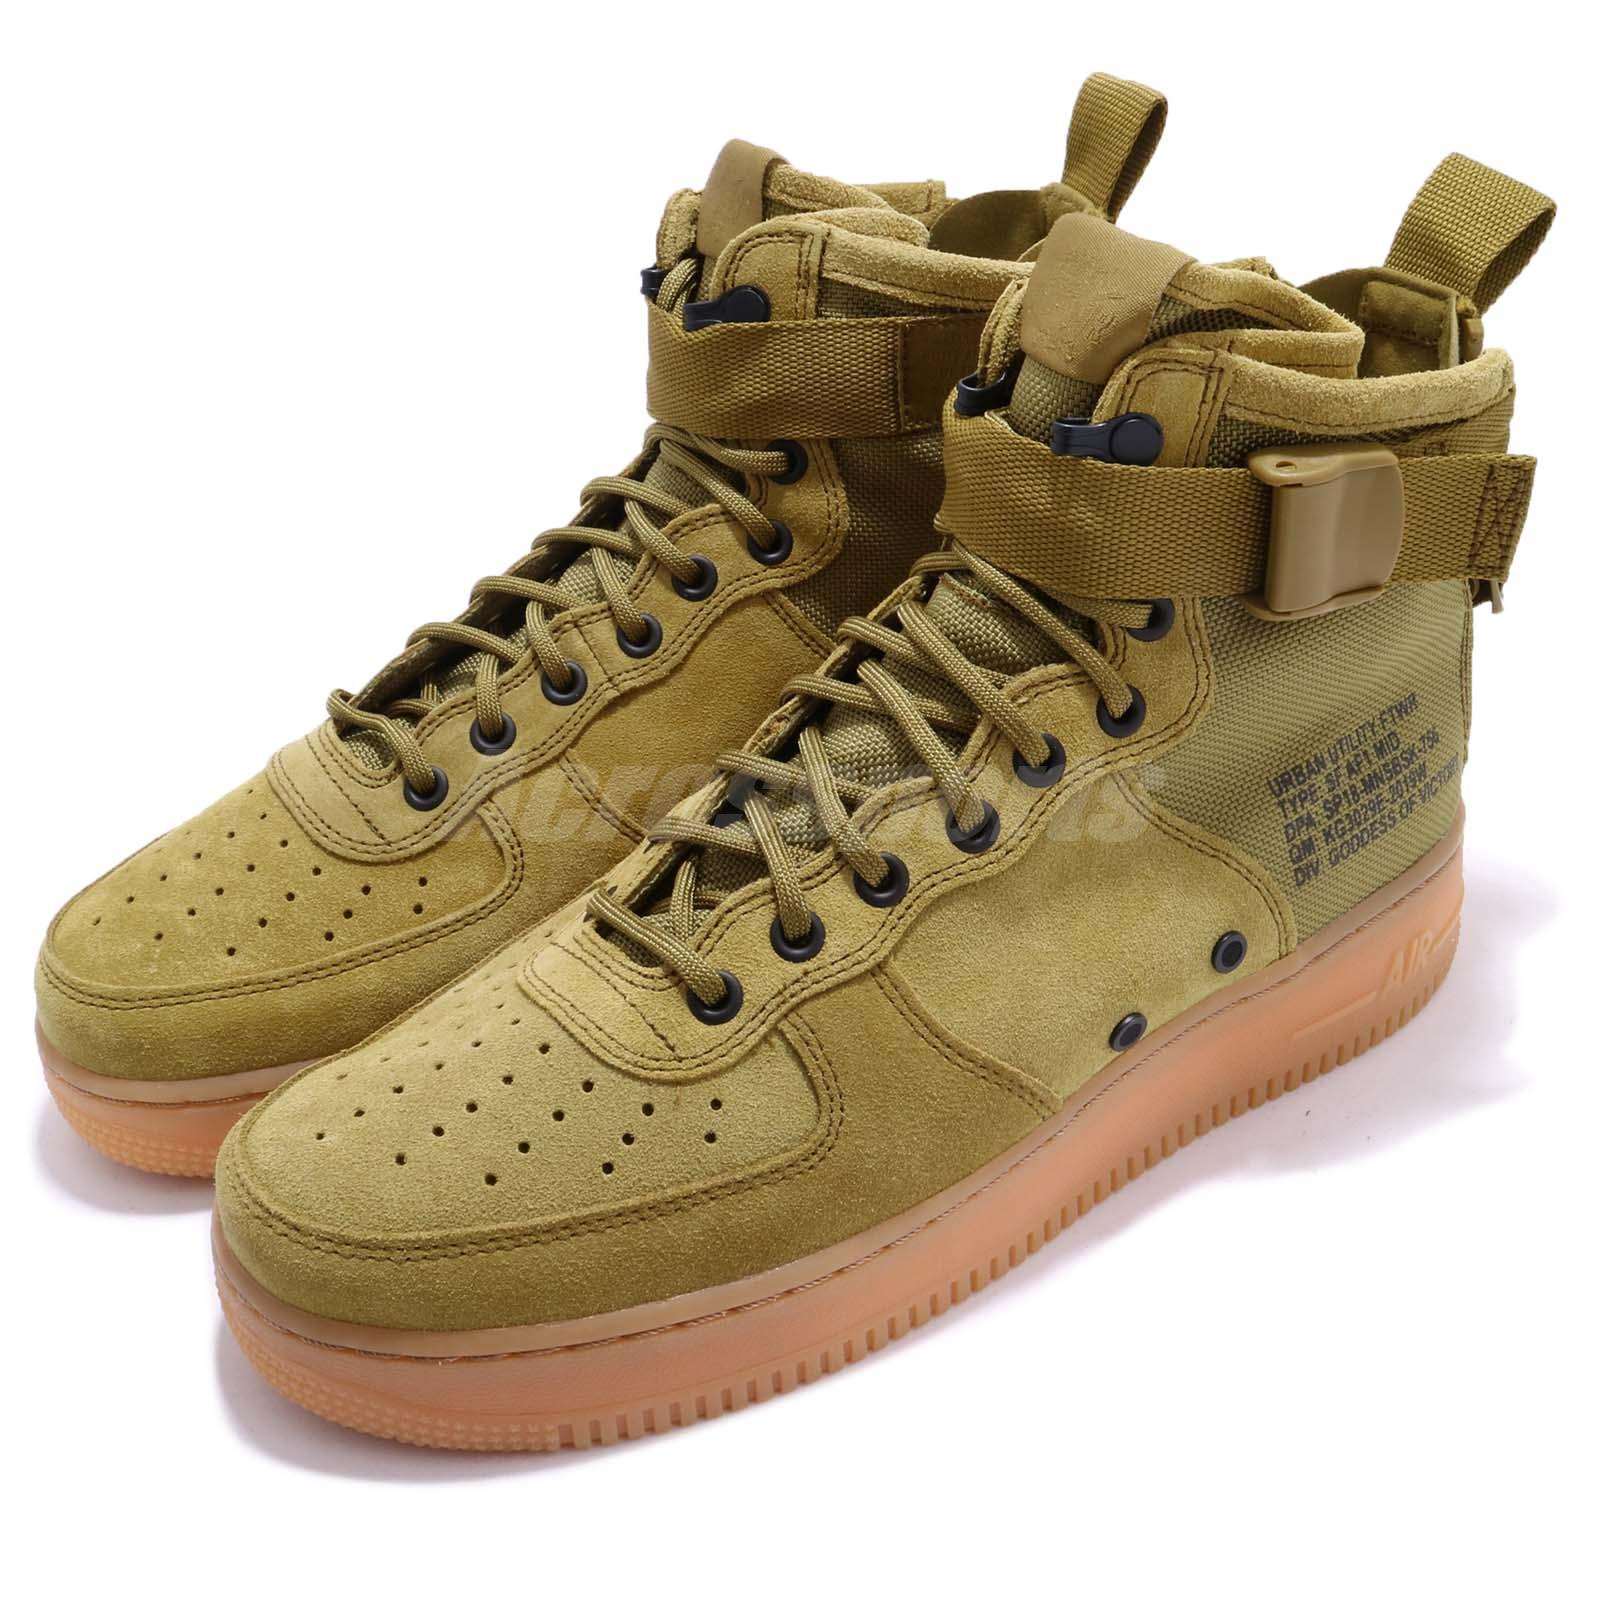 Details about Nike SF AF1 Mid Special Field Air Force 1 Desert Moss Green Men Shoes 917753 301